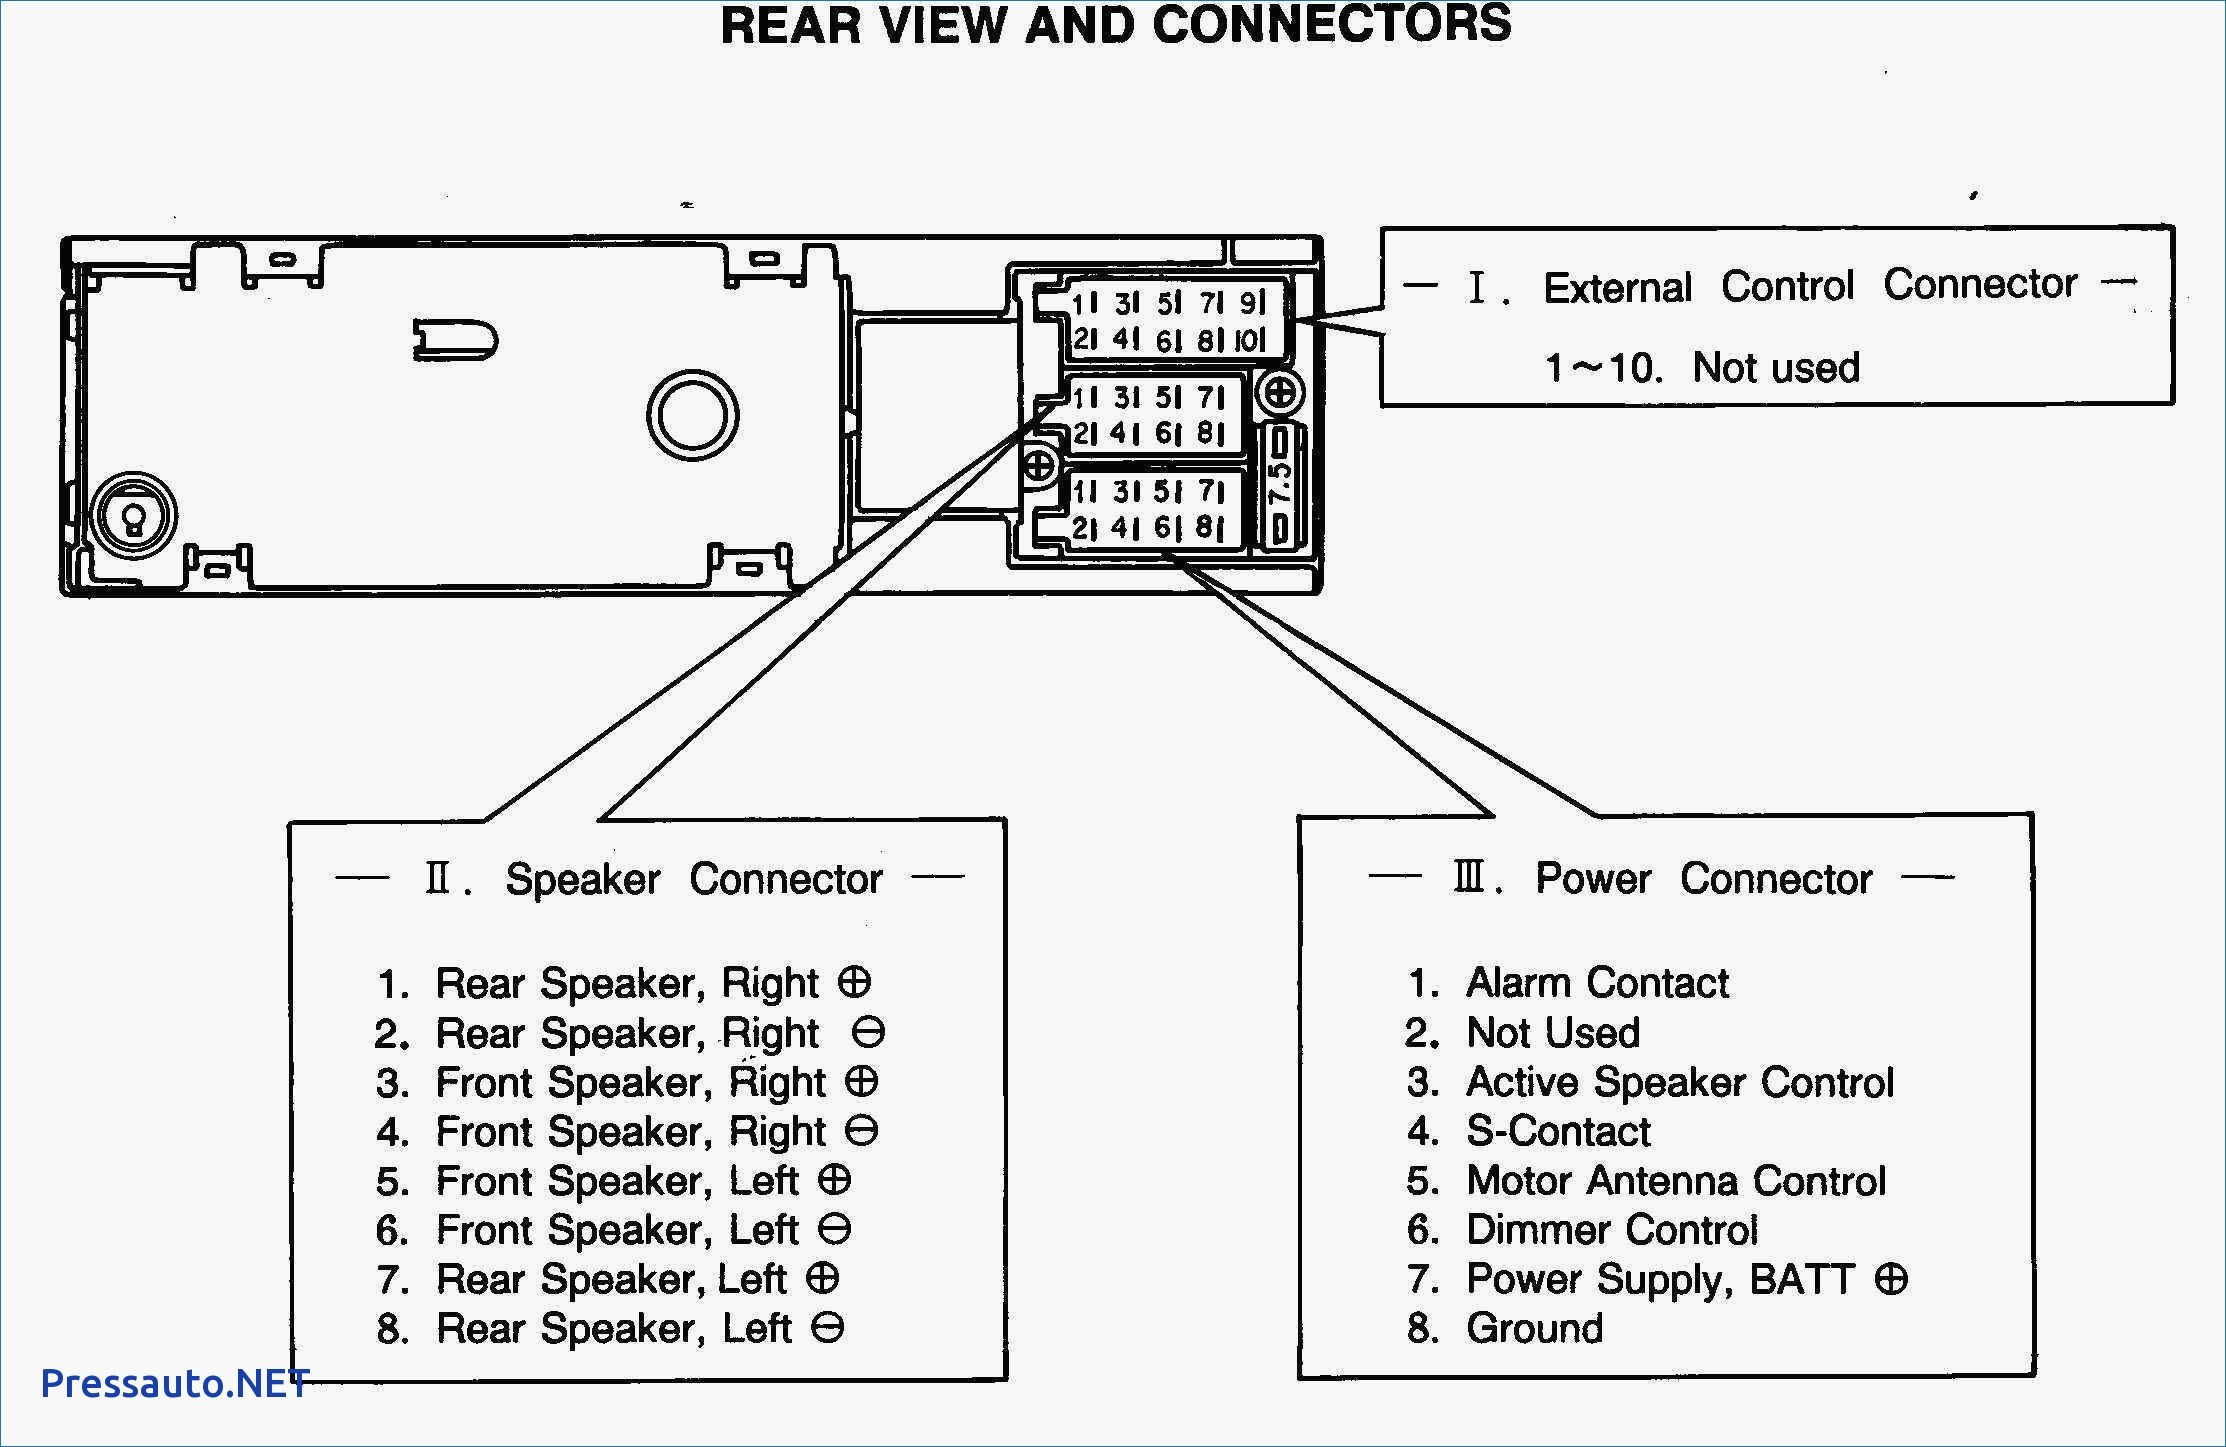 Wiring Diagram for A Kenwood Car Stereo Pyle Alarm Wiring Diagram New Wiring Diagram Kenwood Kdc Database Of Wiring Diagram for A Kenwood Car Stereo